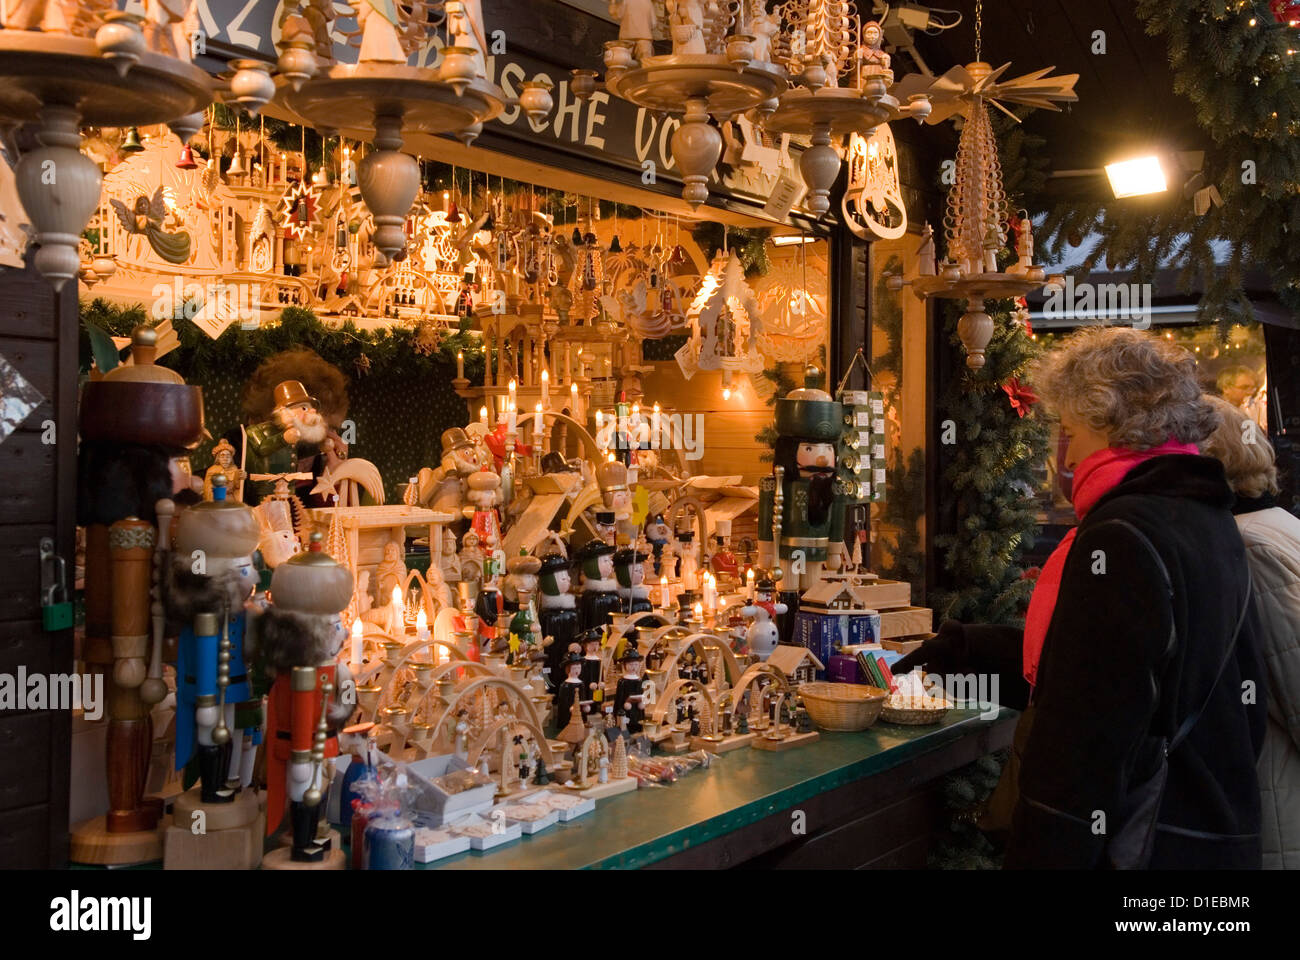 traditional german wooden christmas decorations berlin germany europe stock image - Traditional German Christmas Decorations